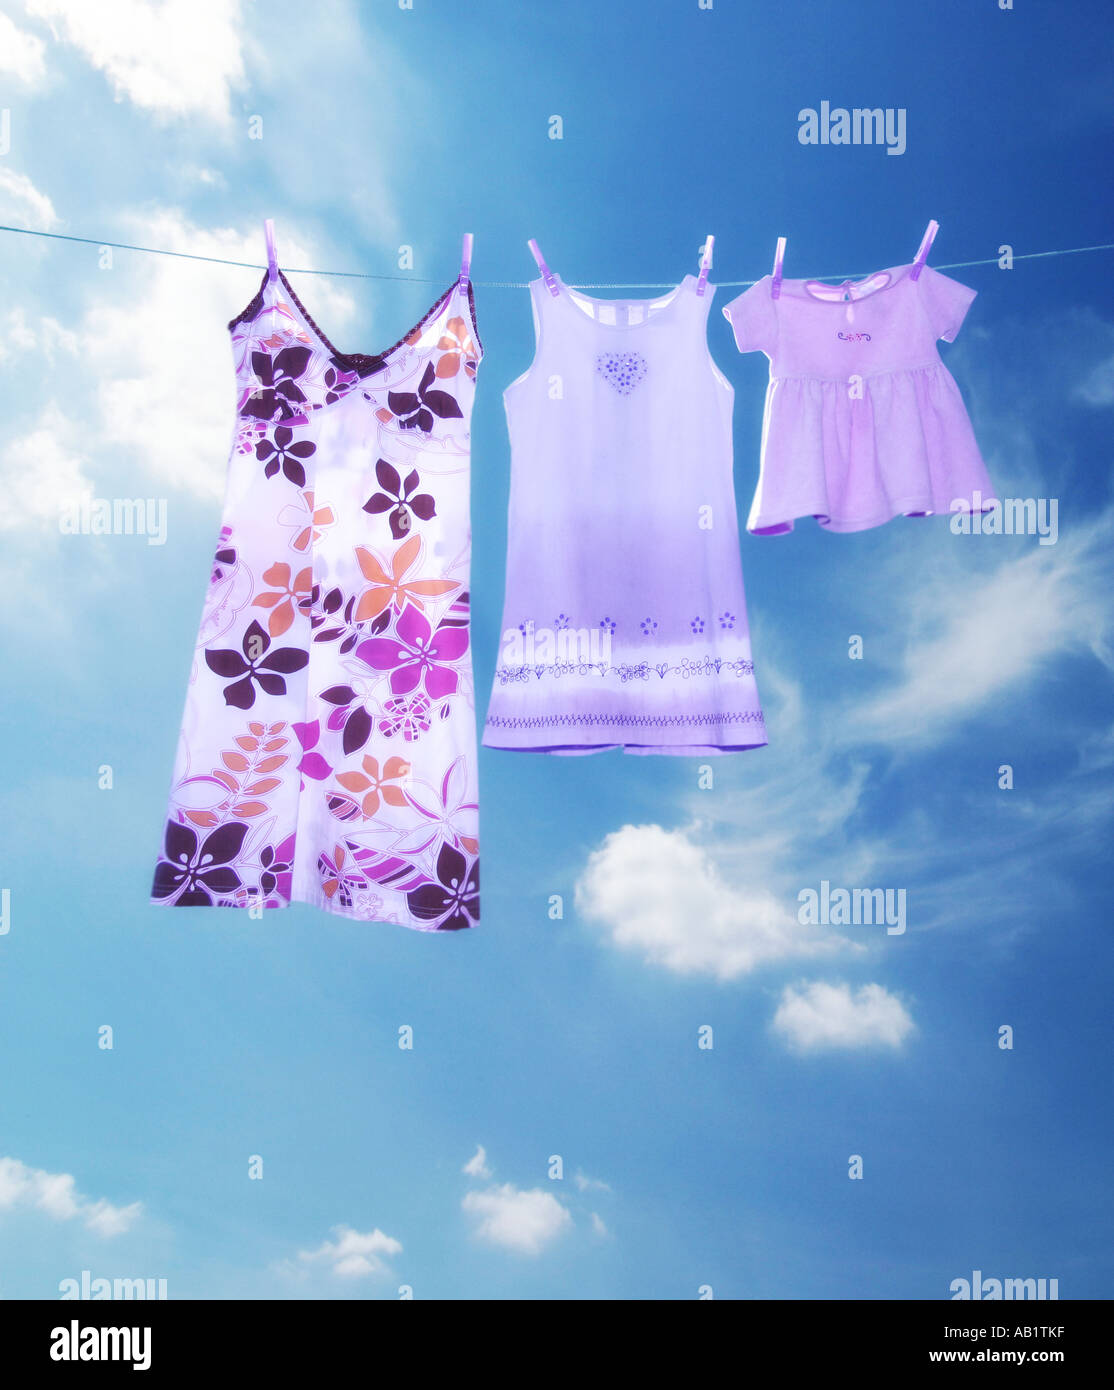 three dresses on a washing line - Stock Image